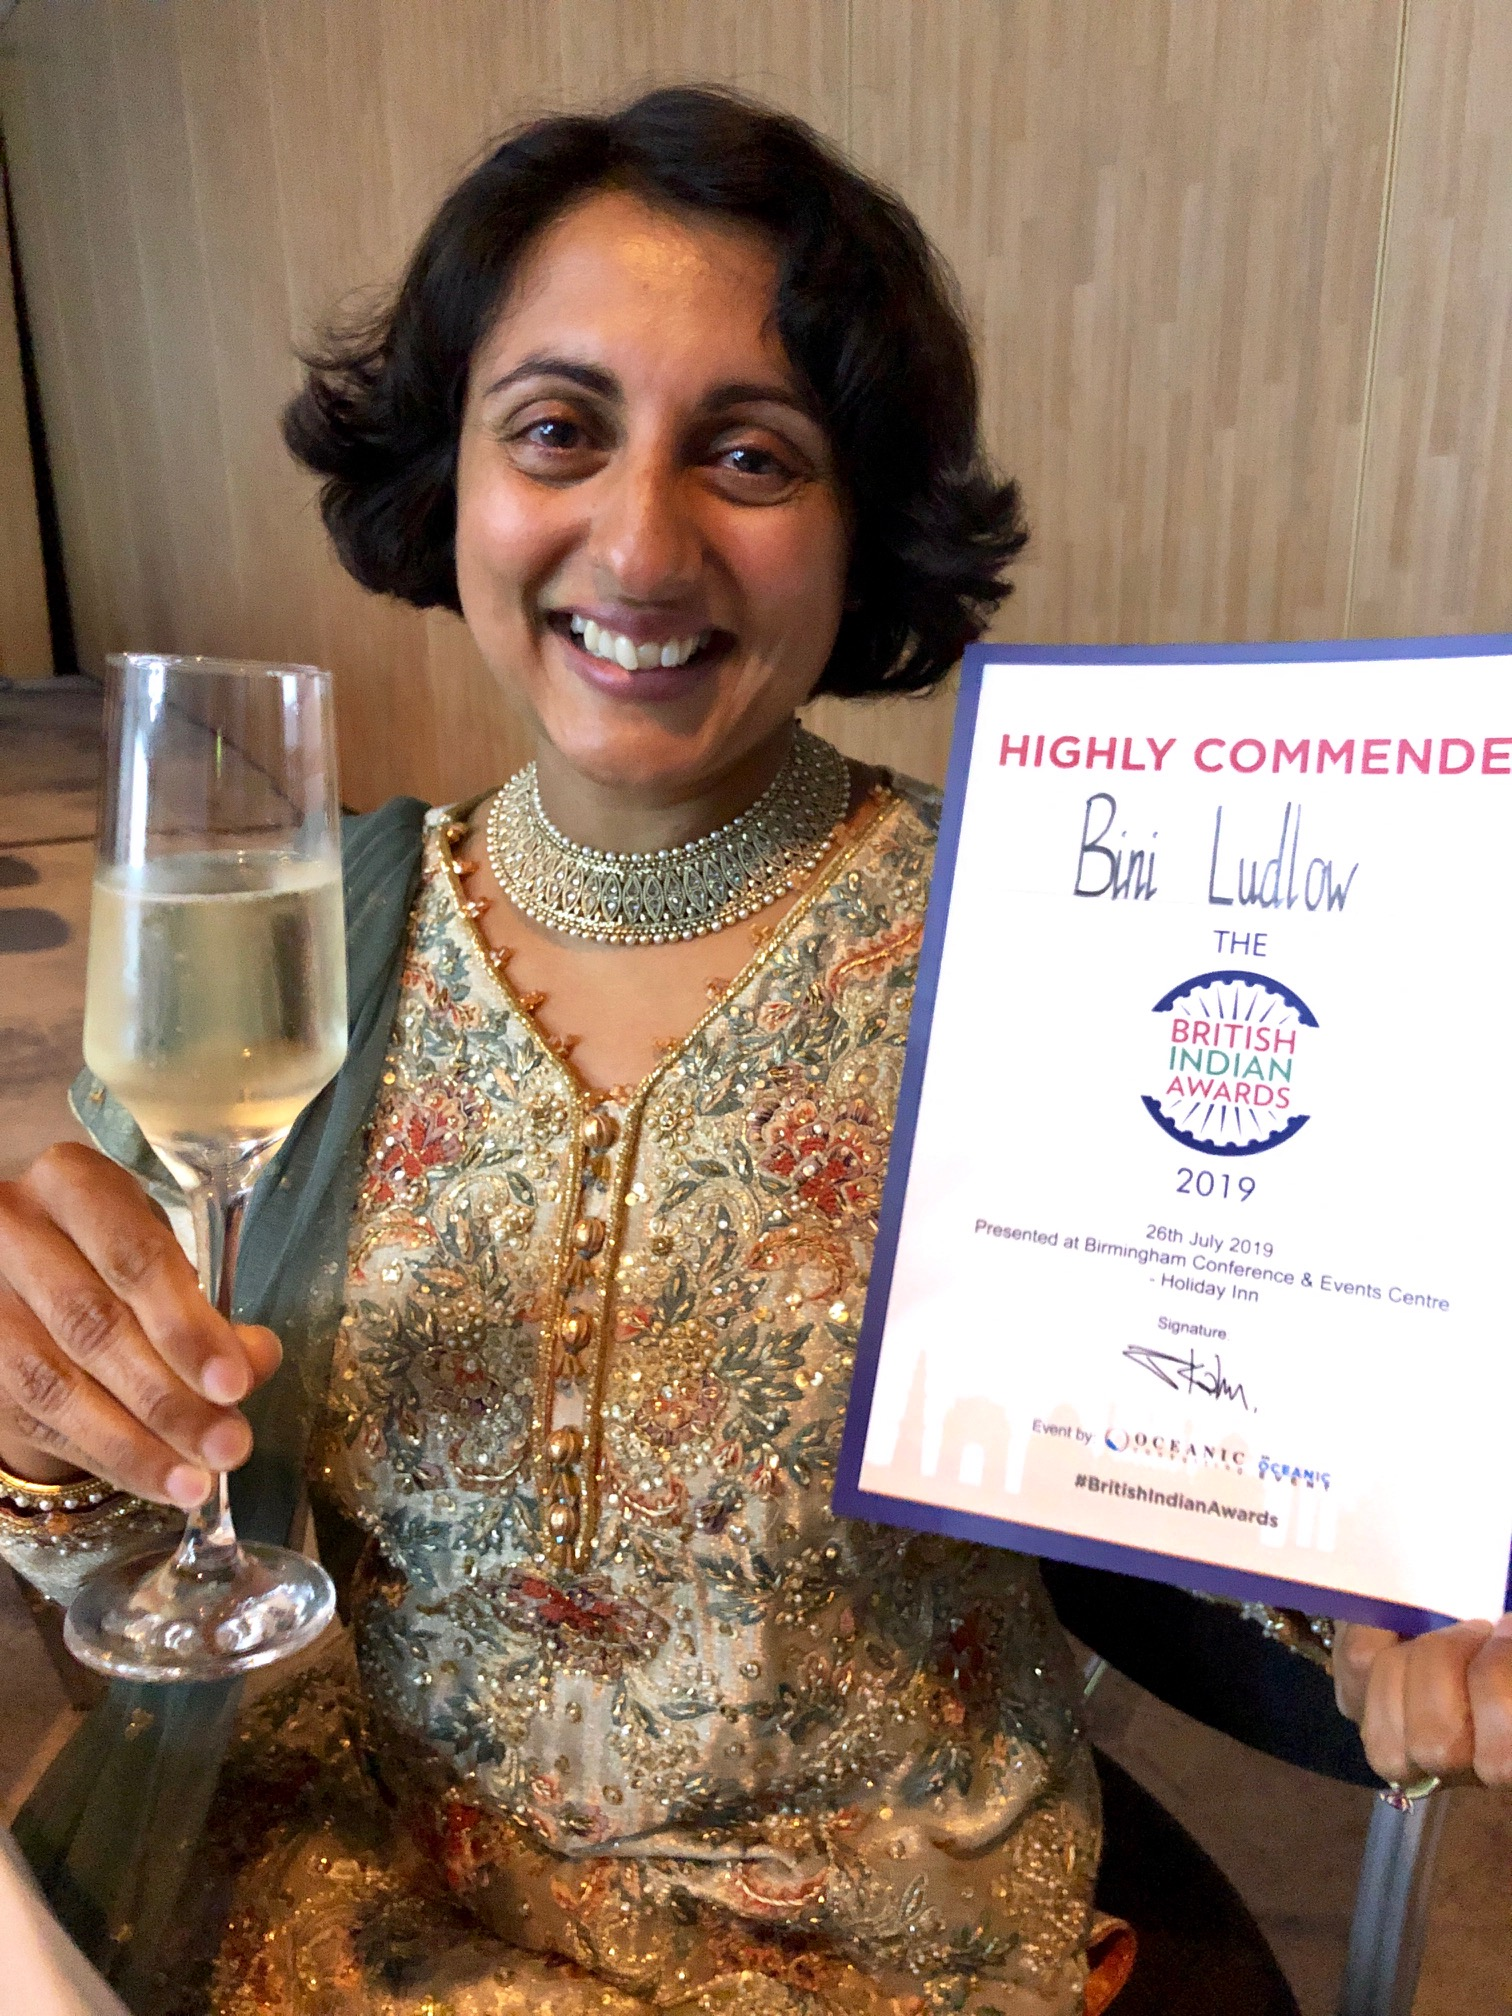 Highly Commended - British Indian Awards - Business Women of the Year 2019